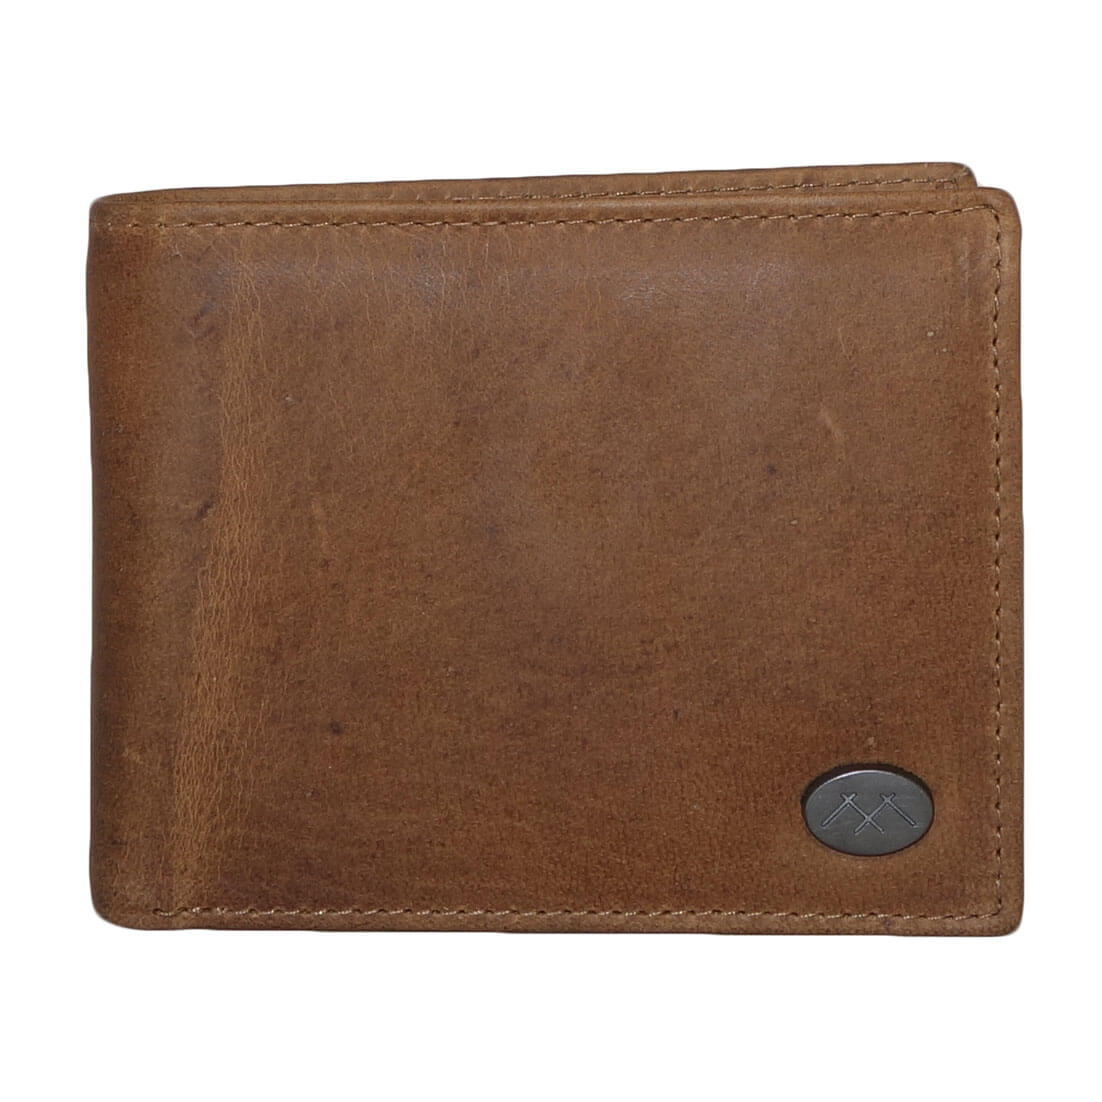 Micmacbags Faible Billfold / Sable Bourse Rfid ycny9z